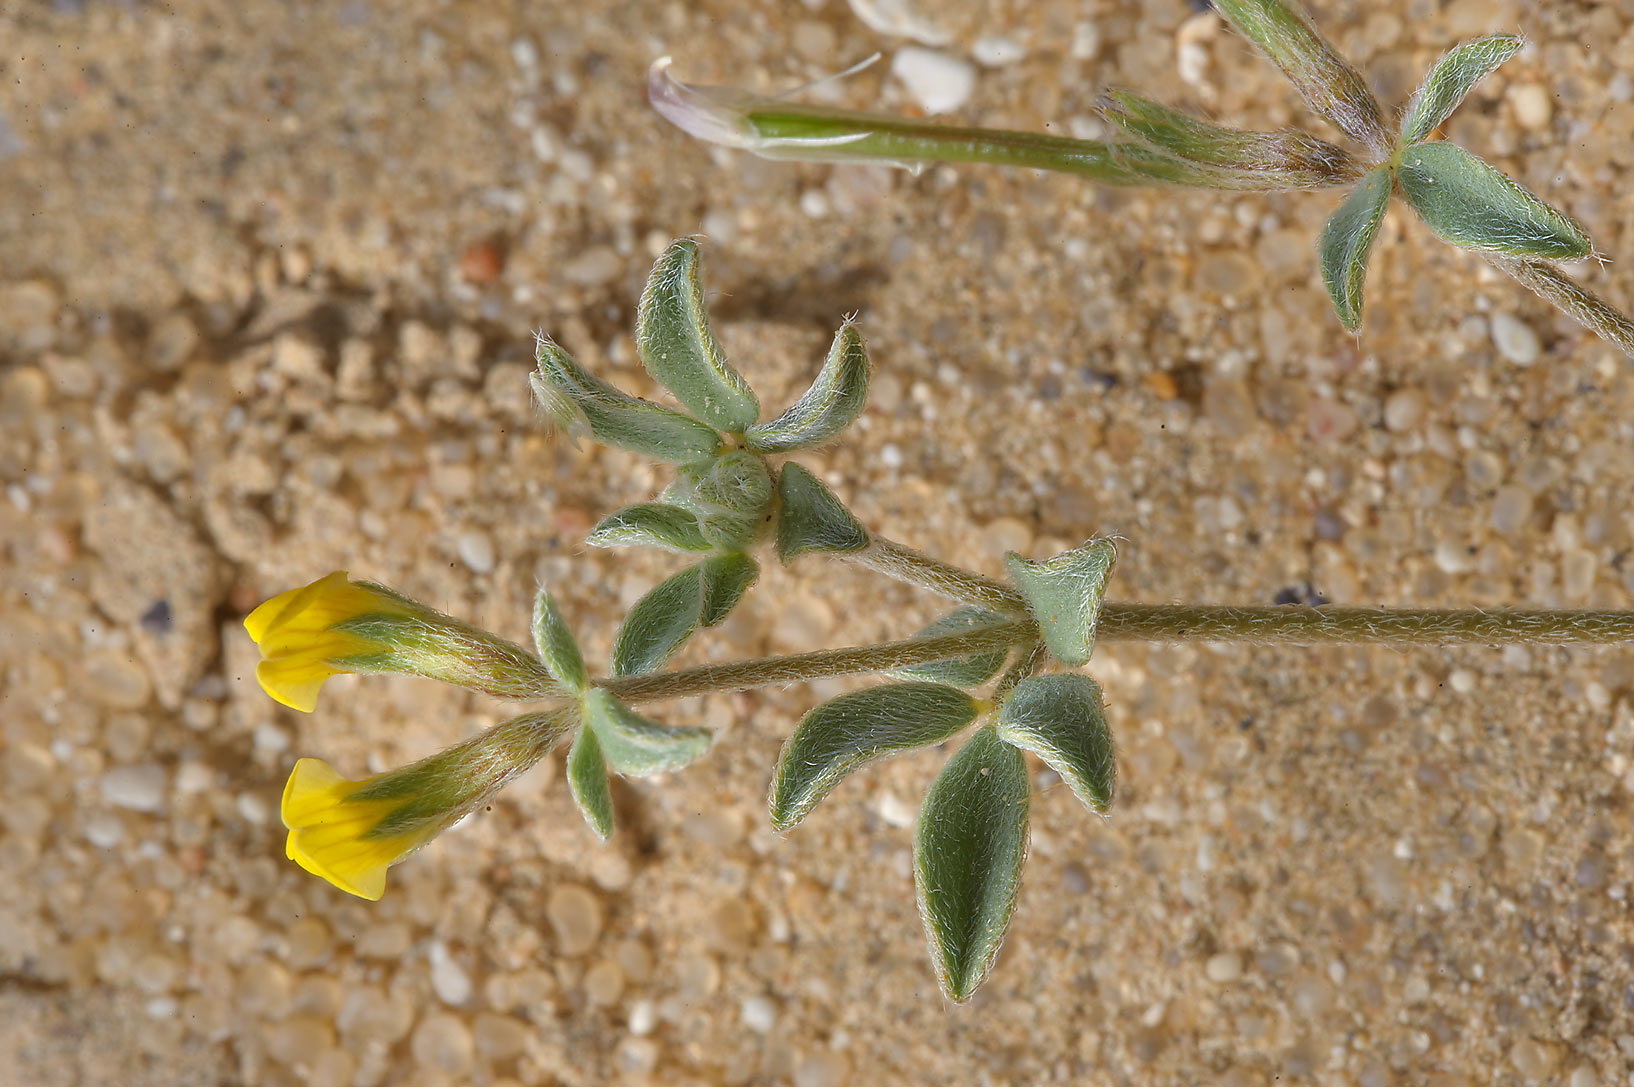 Flowers of greater bird's foot trefoil (Lotus...near Dukhan Rd.. Western Qatar